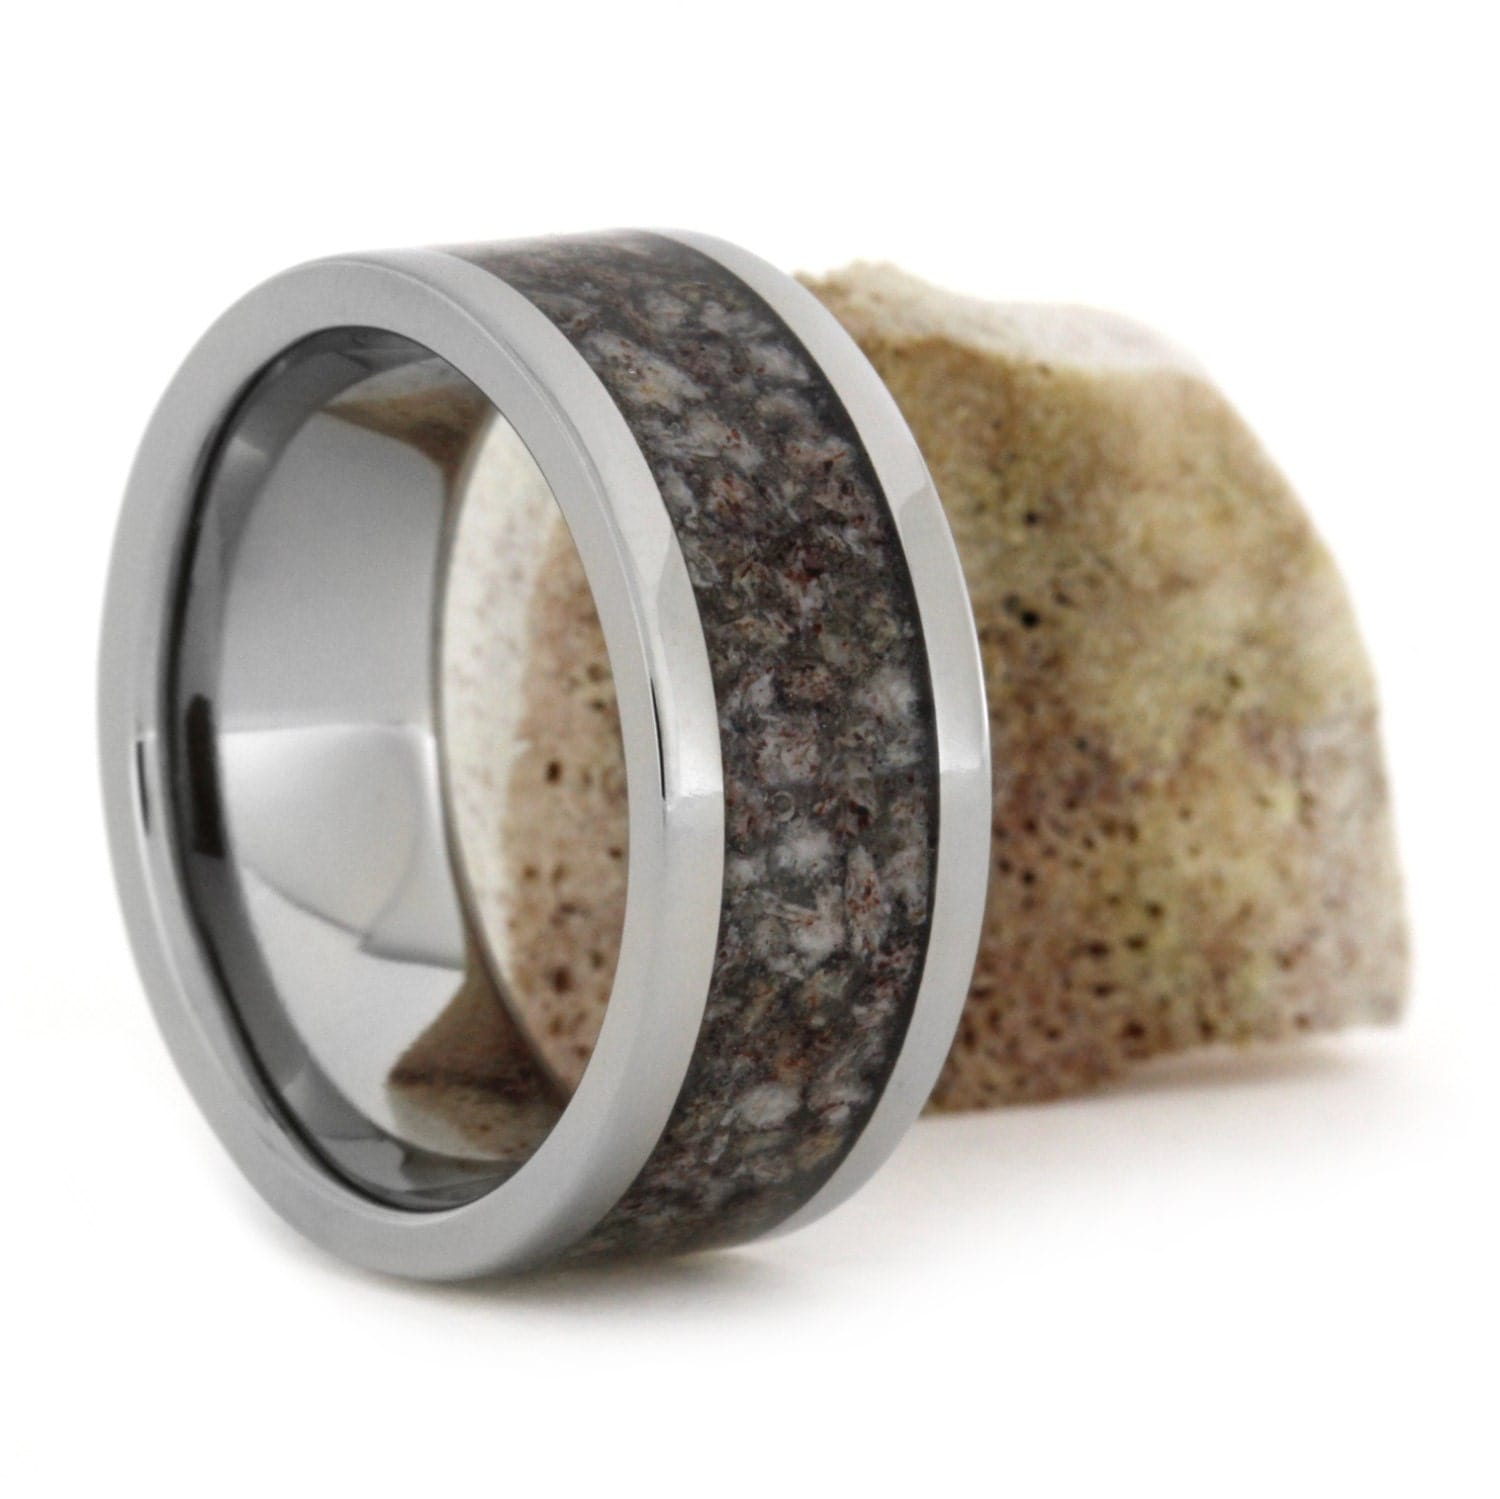 antler jewelry deer antler rings with light and tones in